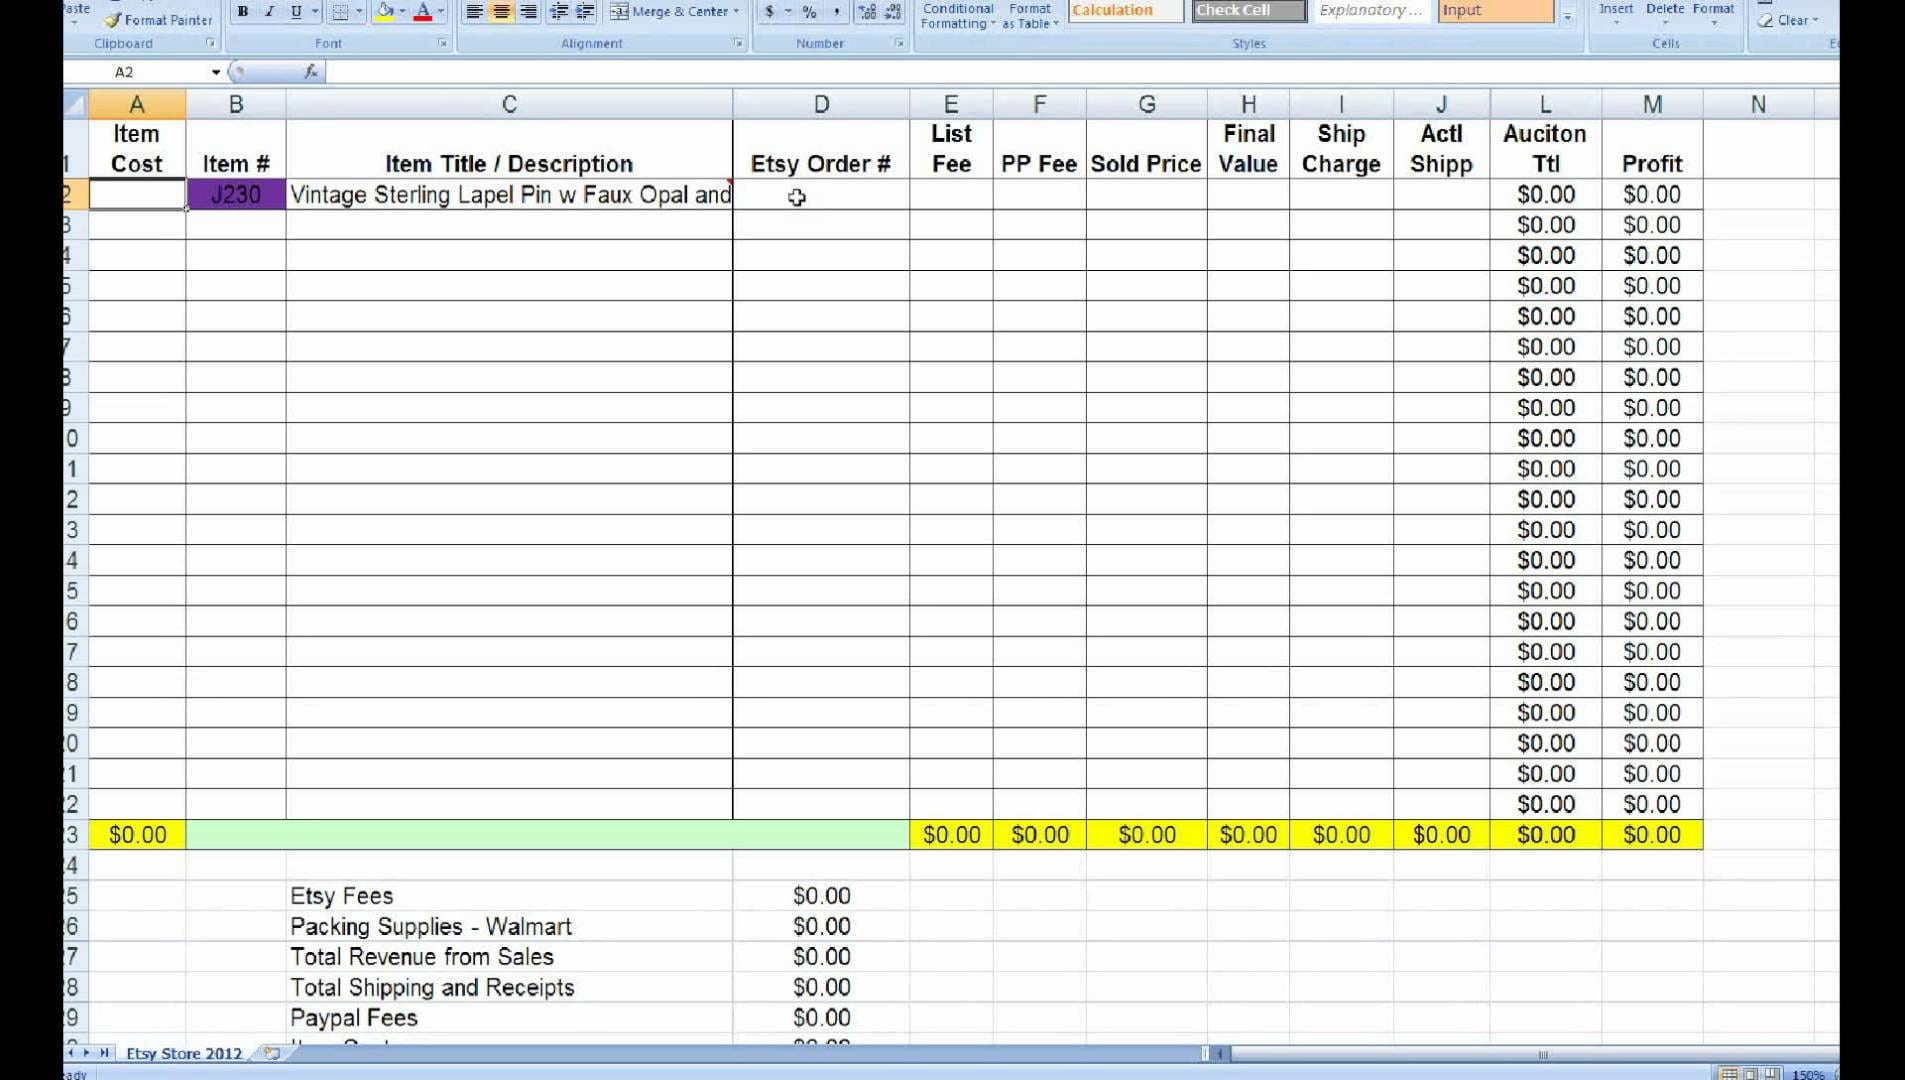 Inventory Management Sheet In Excel Inventory Tracking Spreadsheet Template Spreadsheet Templates for Busines Spreadsheet Templates for Busines Stock Inventory Excel Template